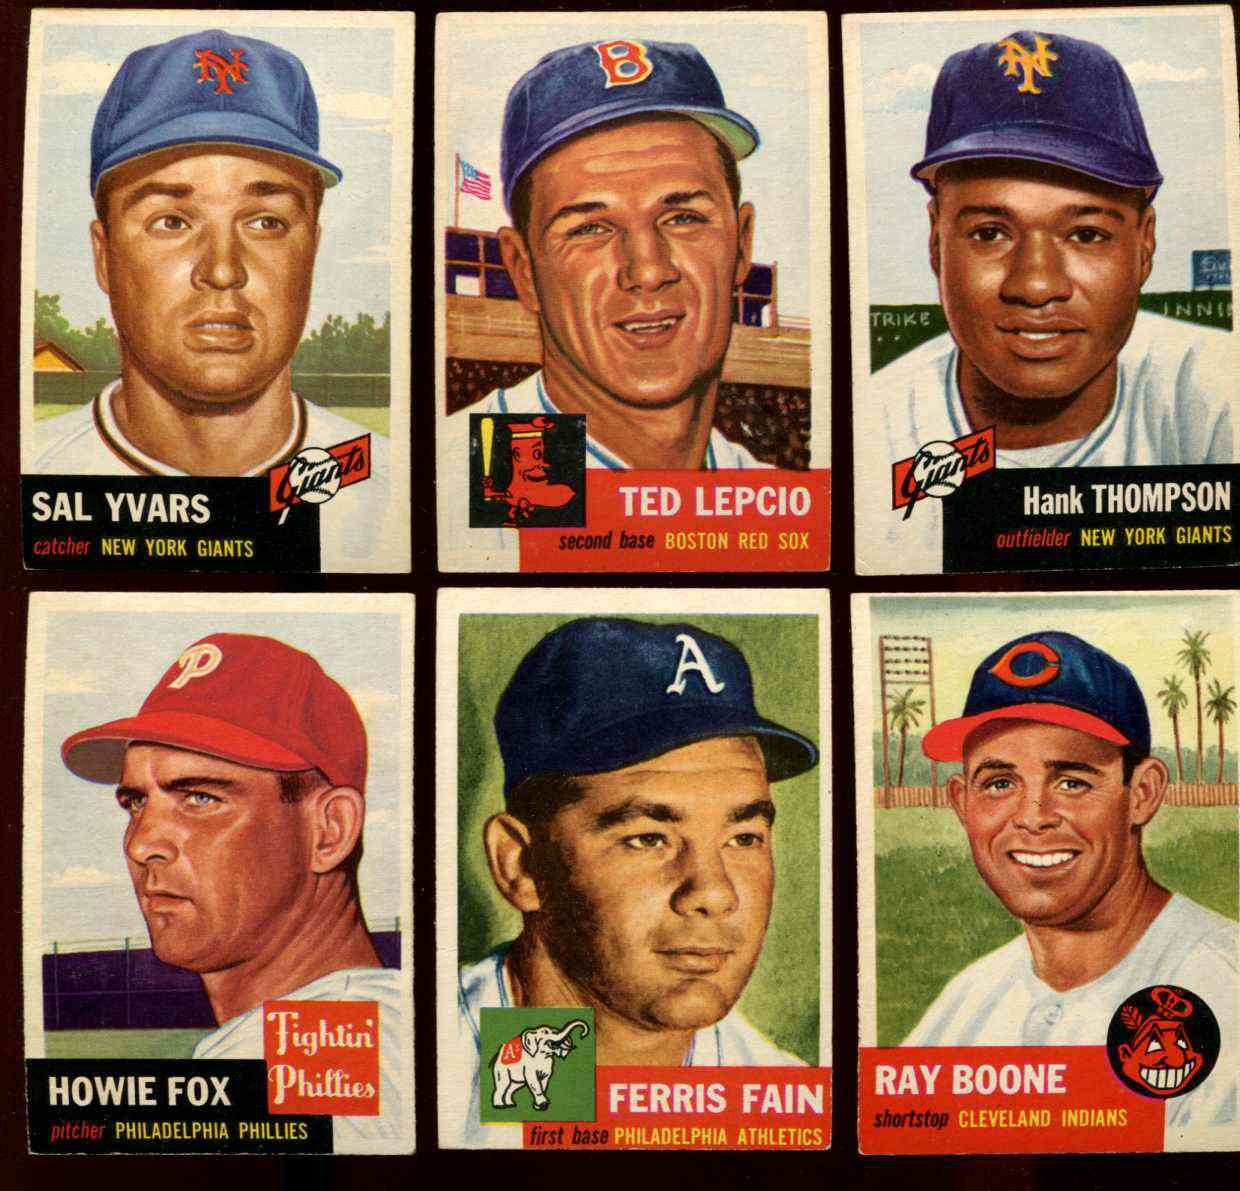 1953 Topps #.22 Howie Fox [#x] (Phillies) Baseball cards value